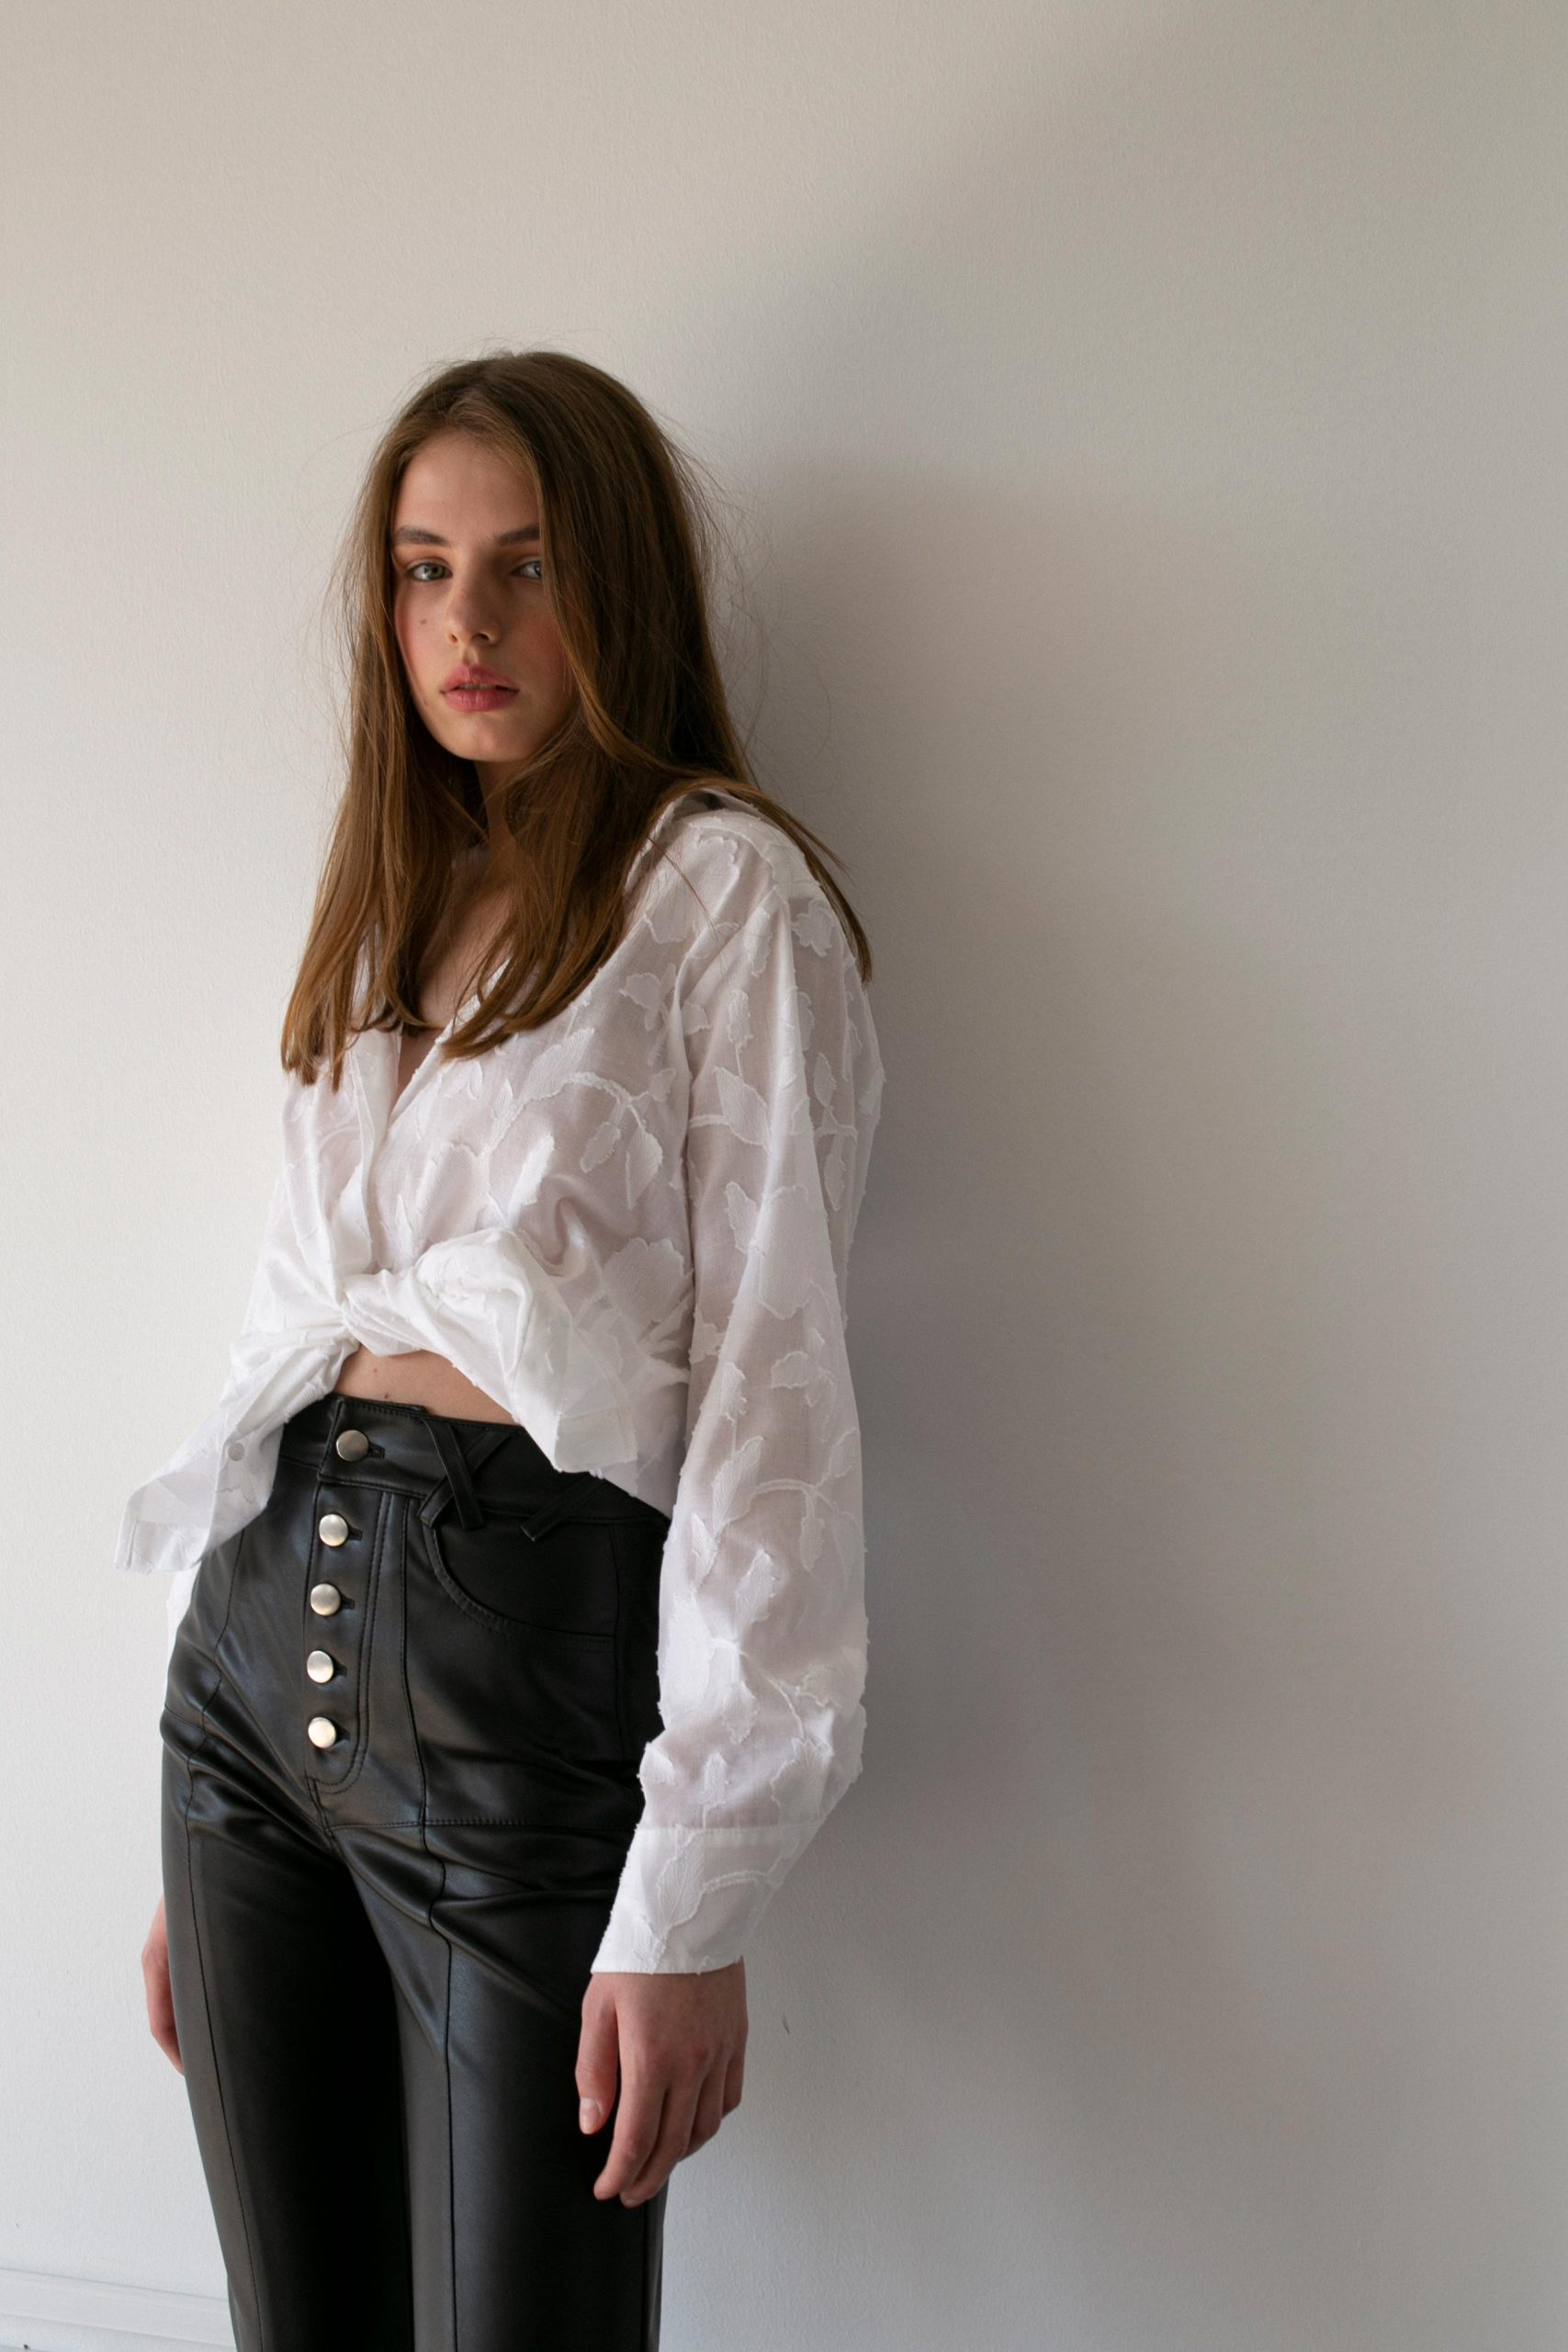 RAQUETTE SS20 - High White shirt / Rocket faux leather pants